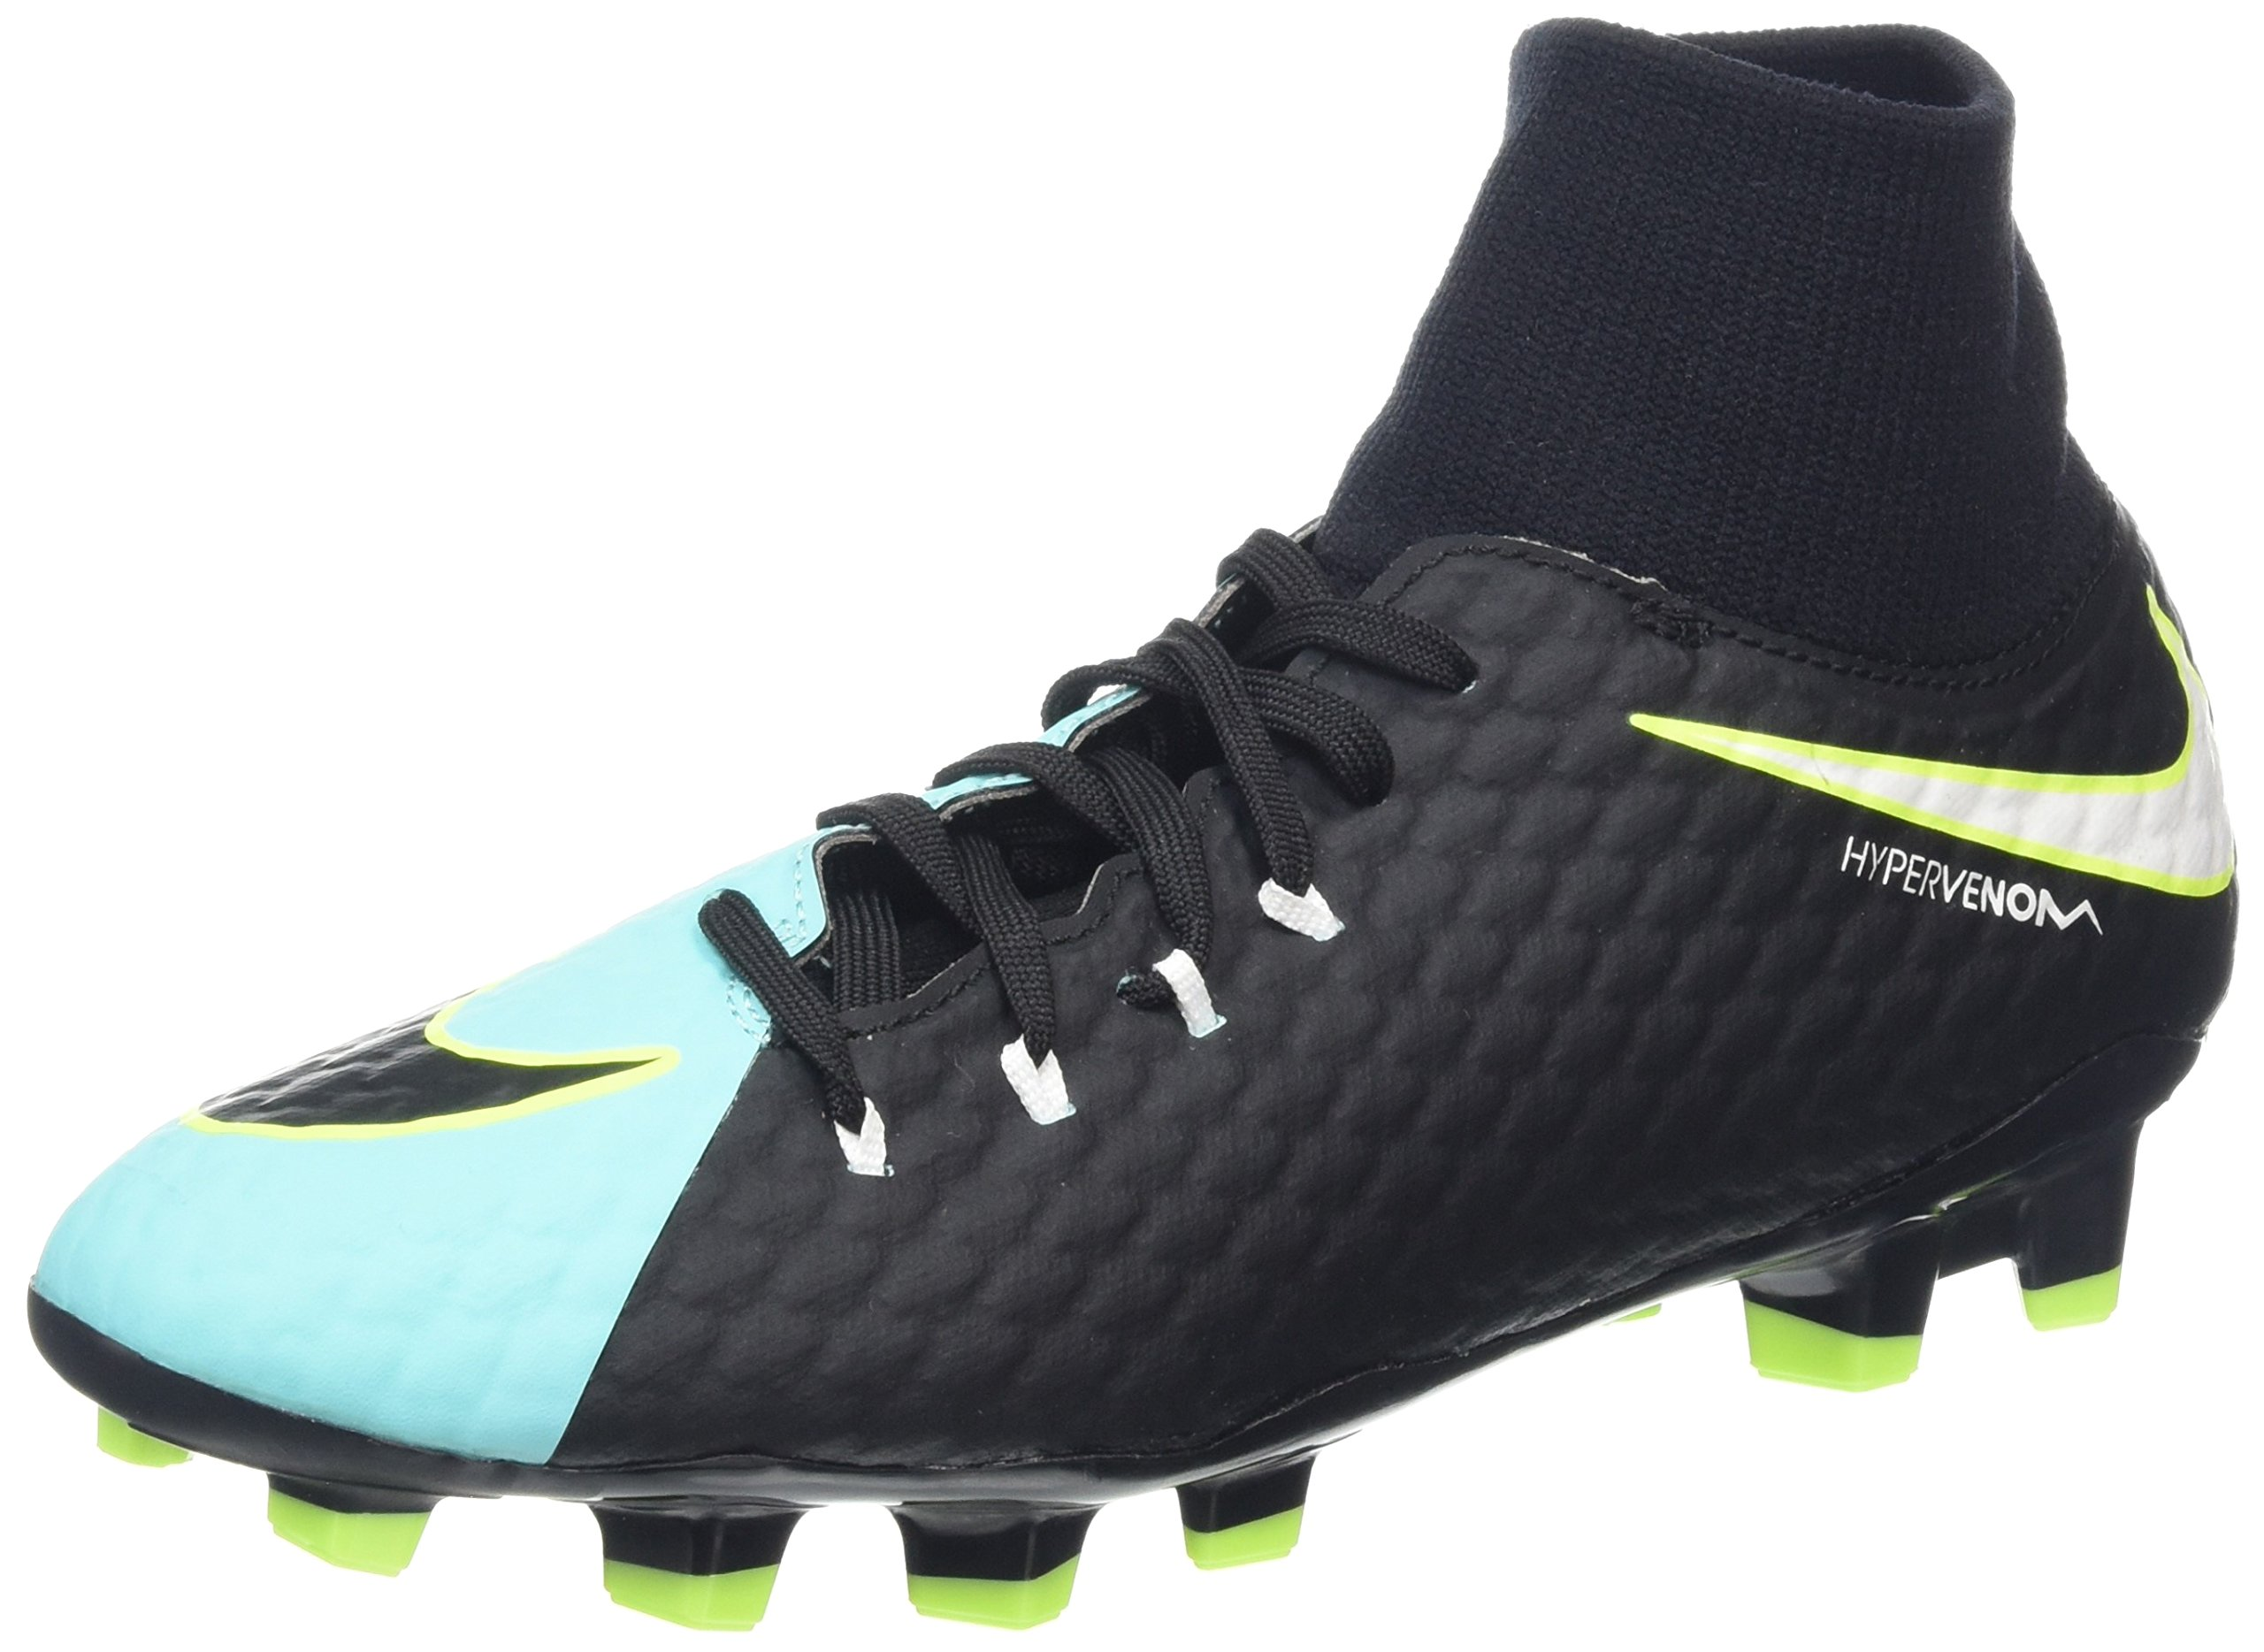 Nike New Women's Hypervenom Phelon III Dynamic Fit FG Soccer Cleat Aqua/Black 7.5